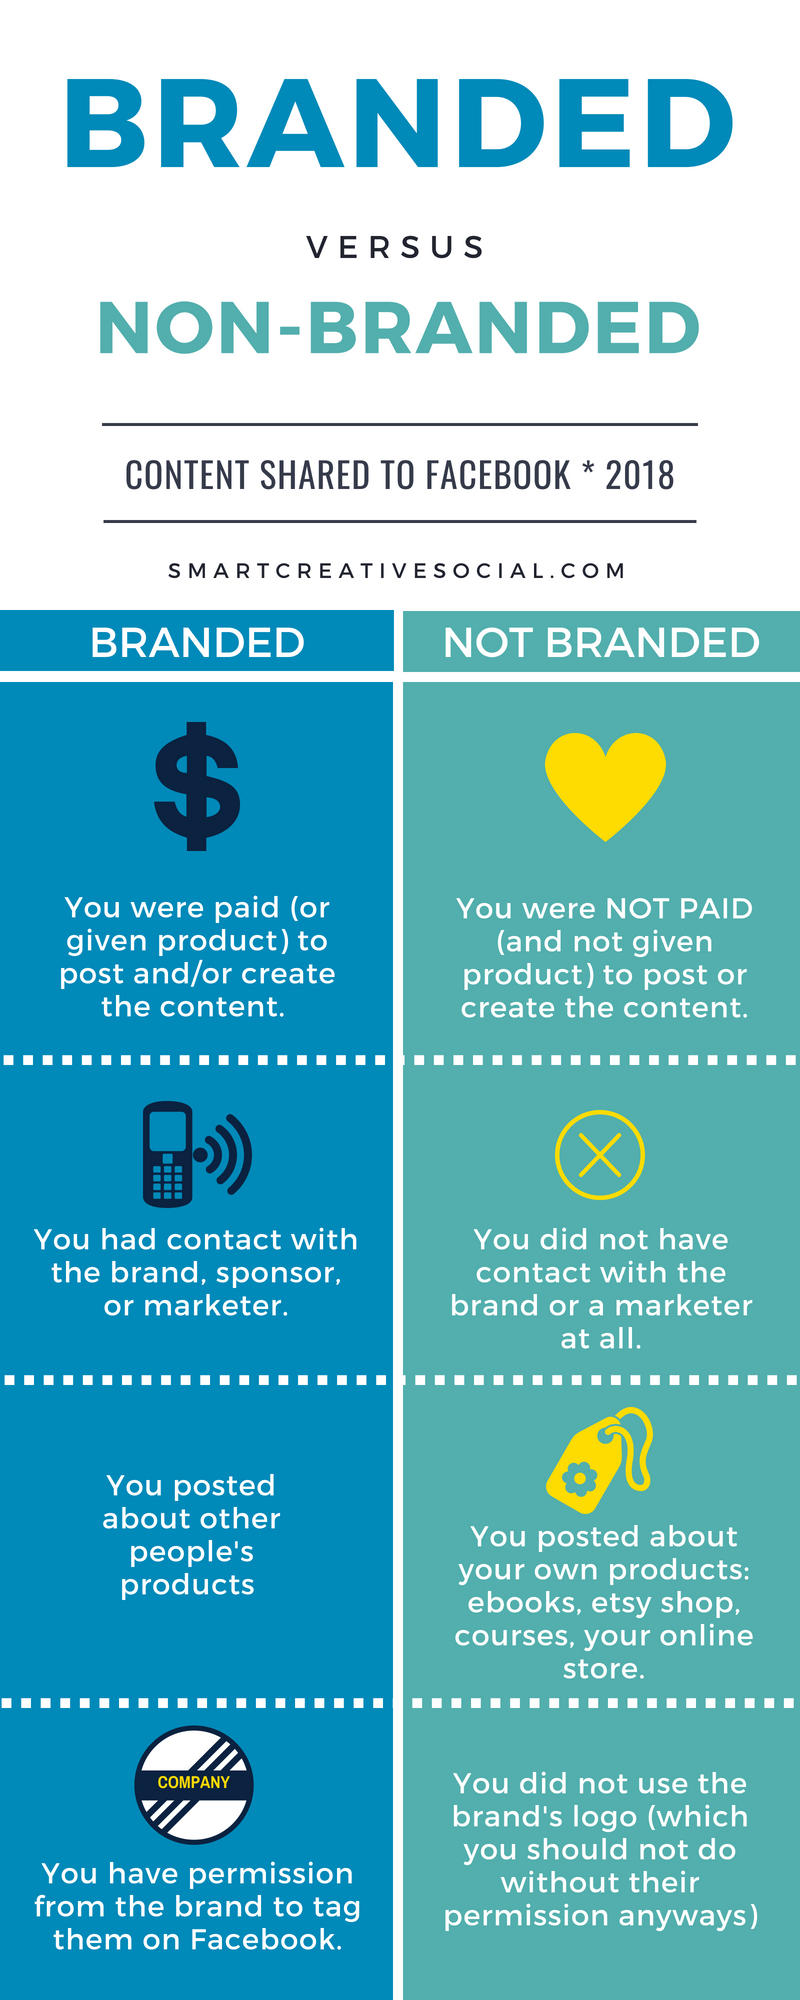 Chart of branded content versus non-branded content on Facebook